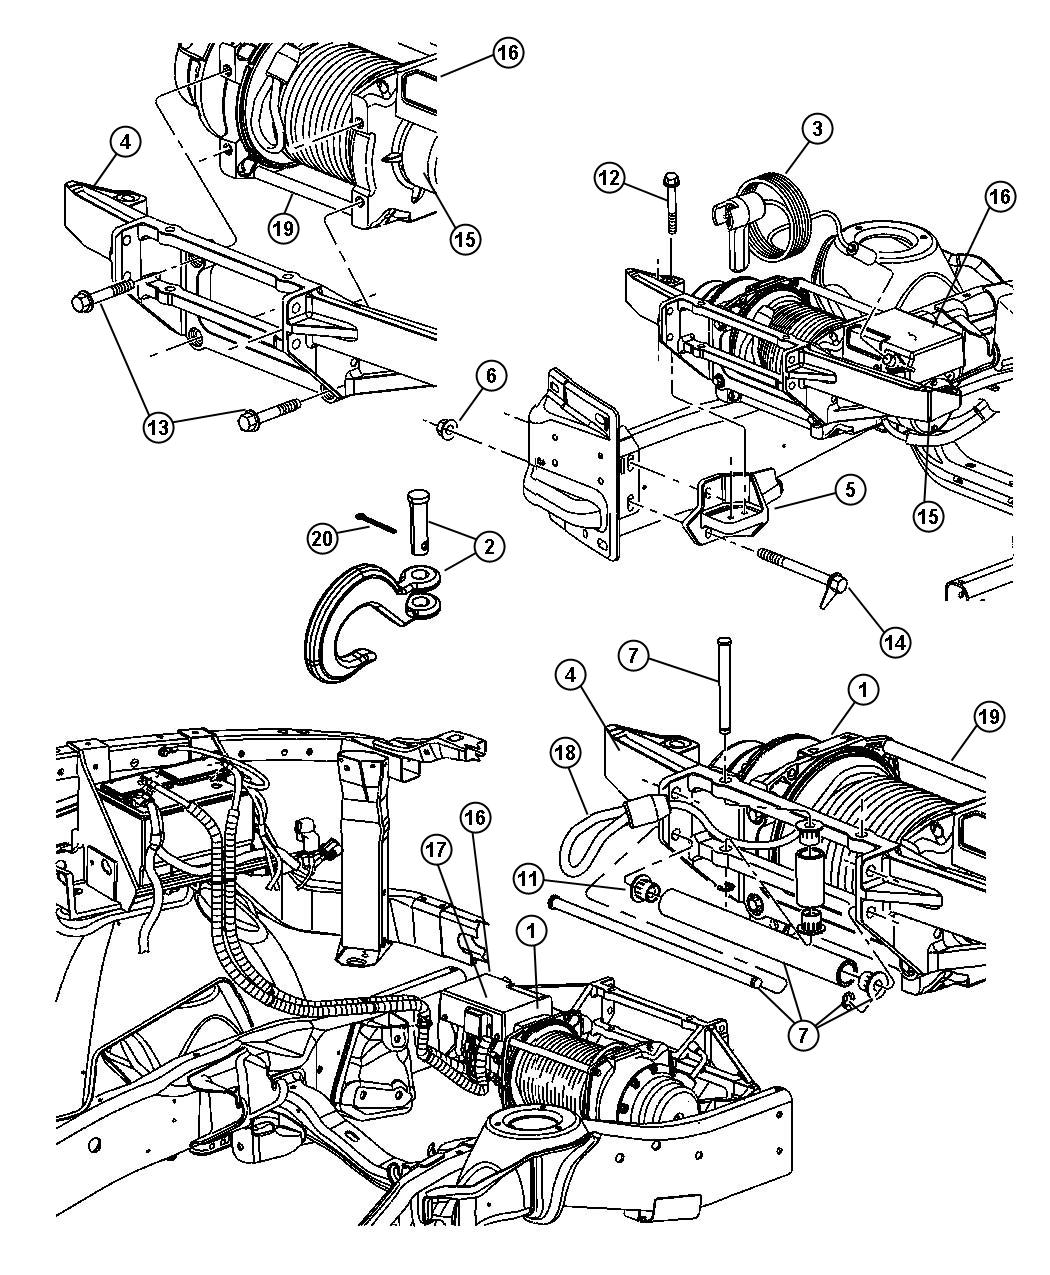 Ram 1500 Wiring. Jumper. [front electric winch], [front